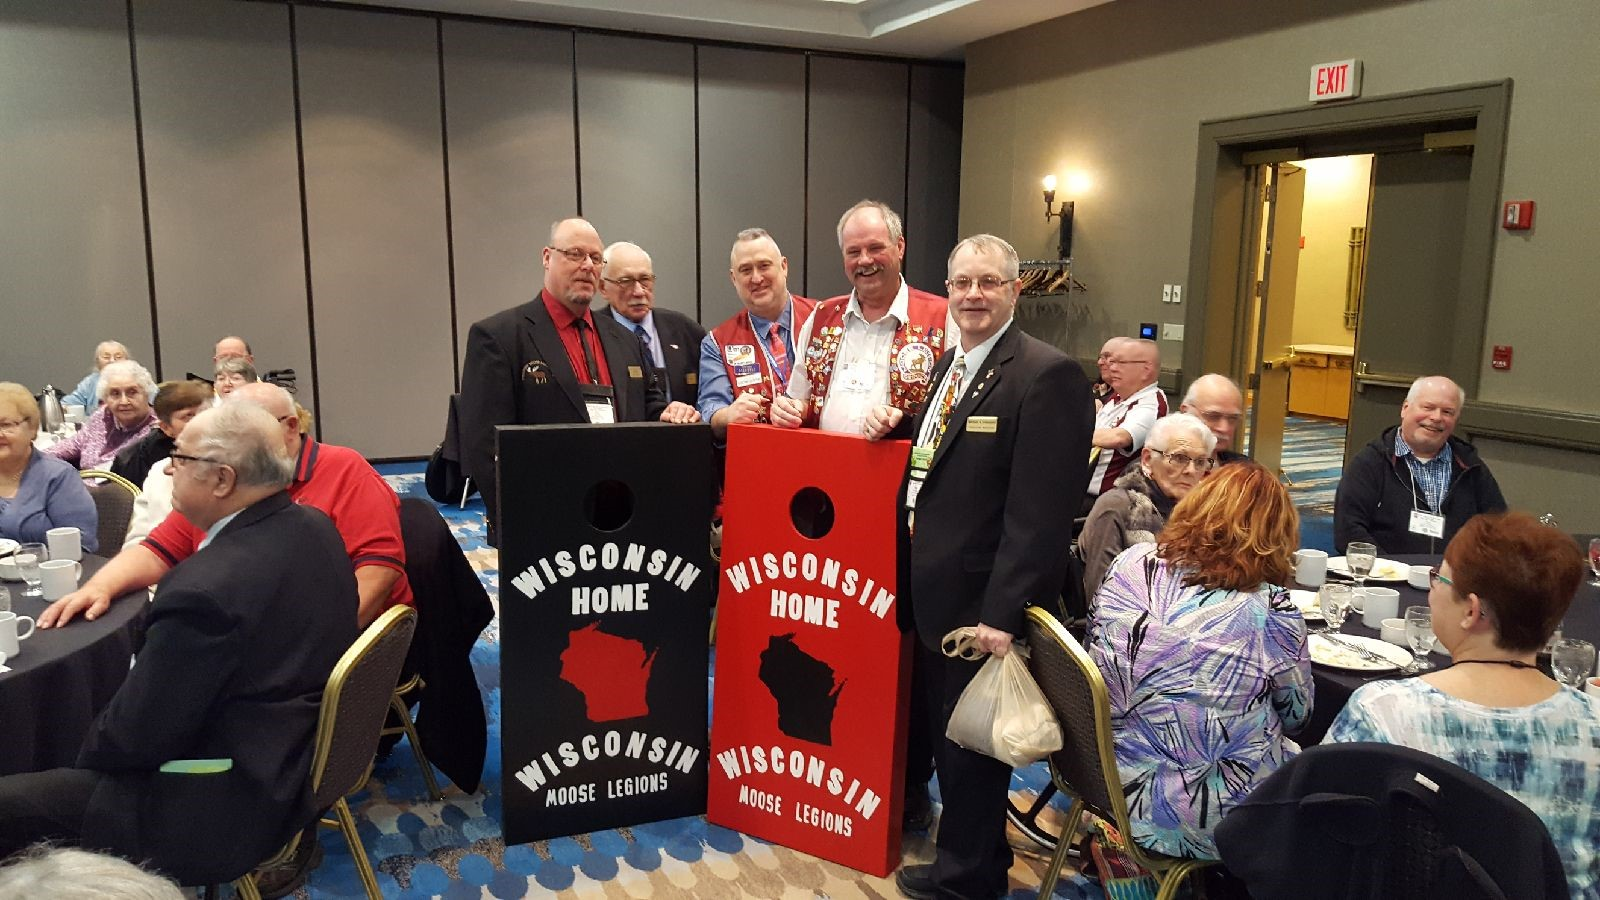 The Moose Legions of Wisconsin Donate Bags Board to the Wisconsin Home